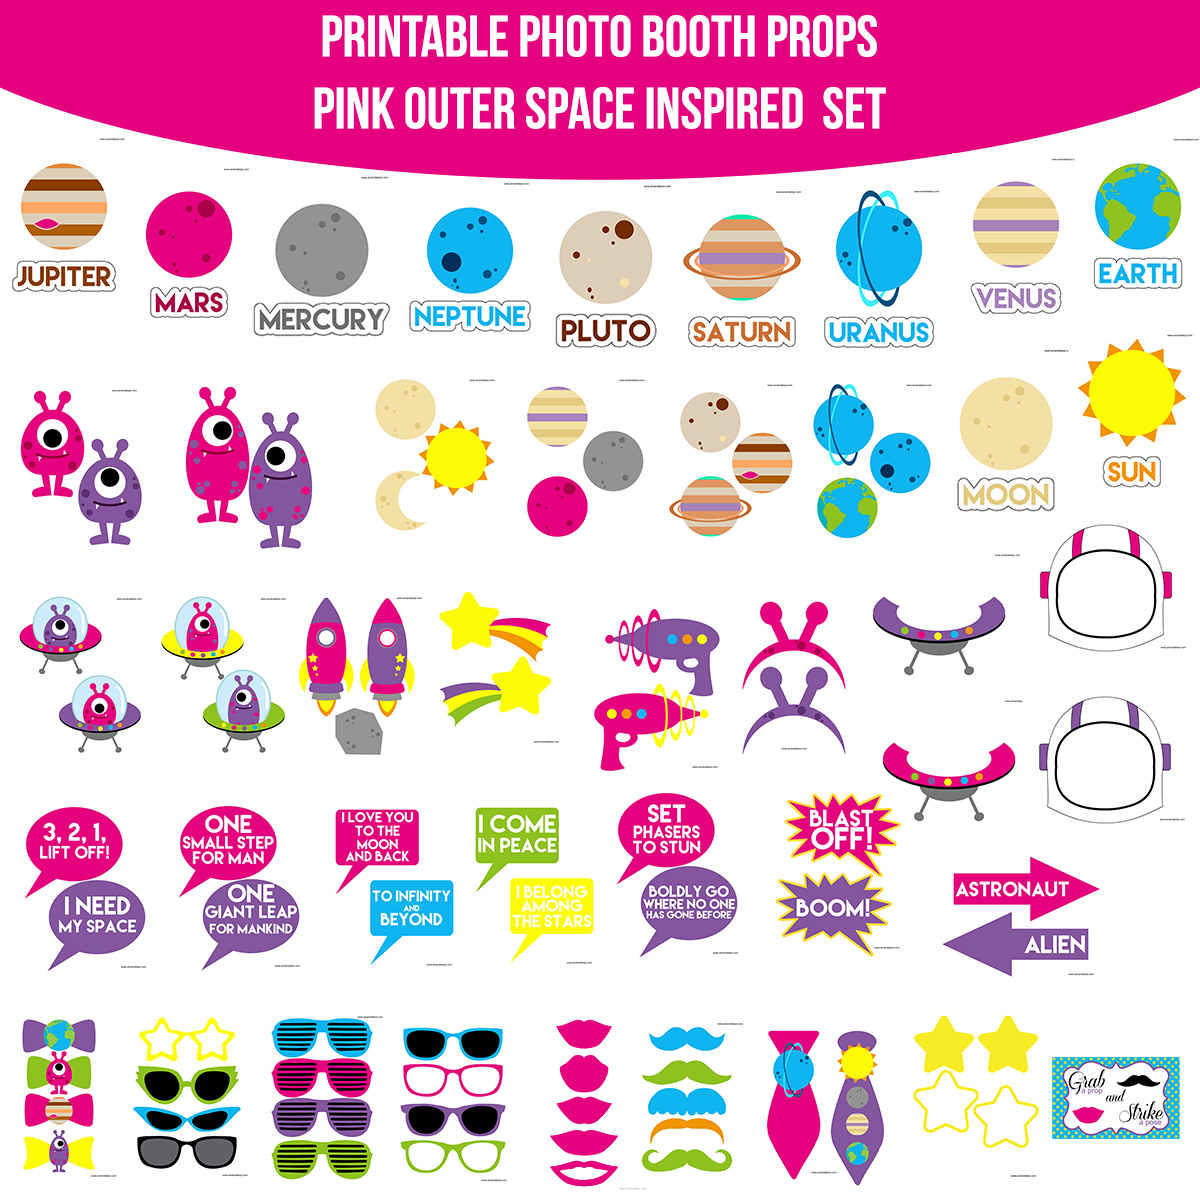 See the Set - To View The Whole Pink Outer Space Printable Photo Booth Prop Set Click Here